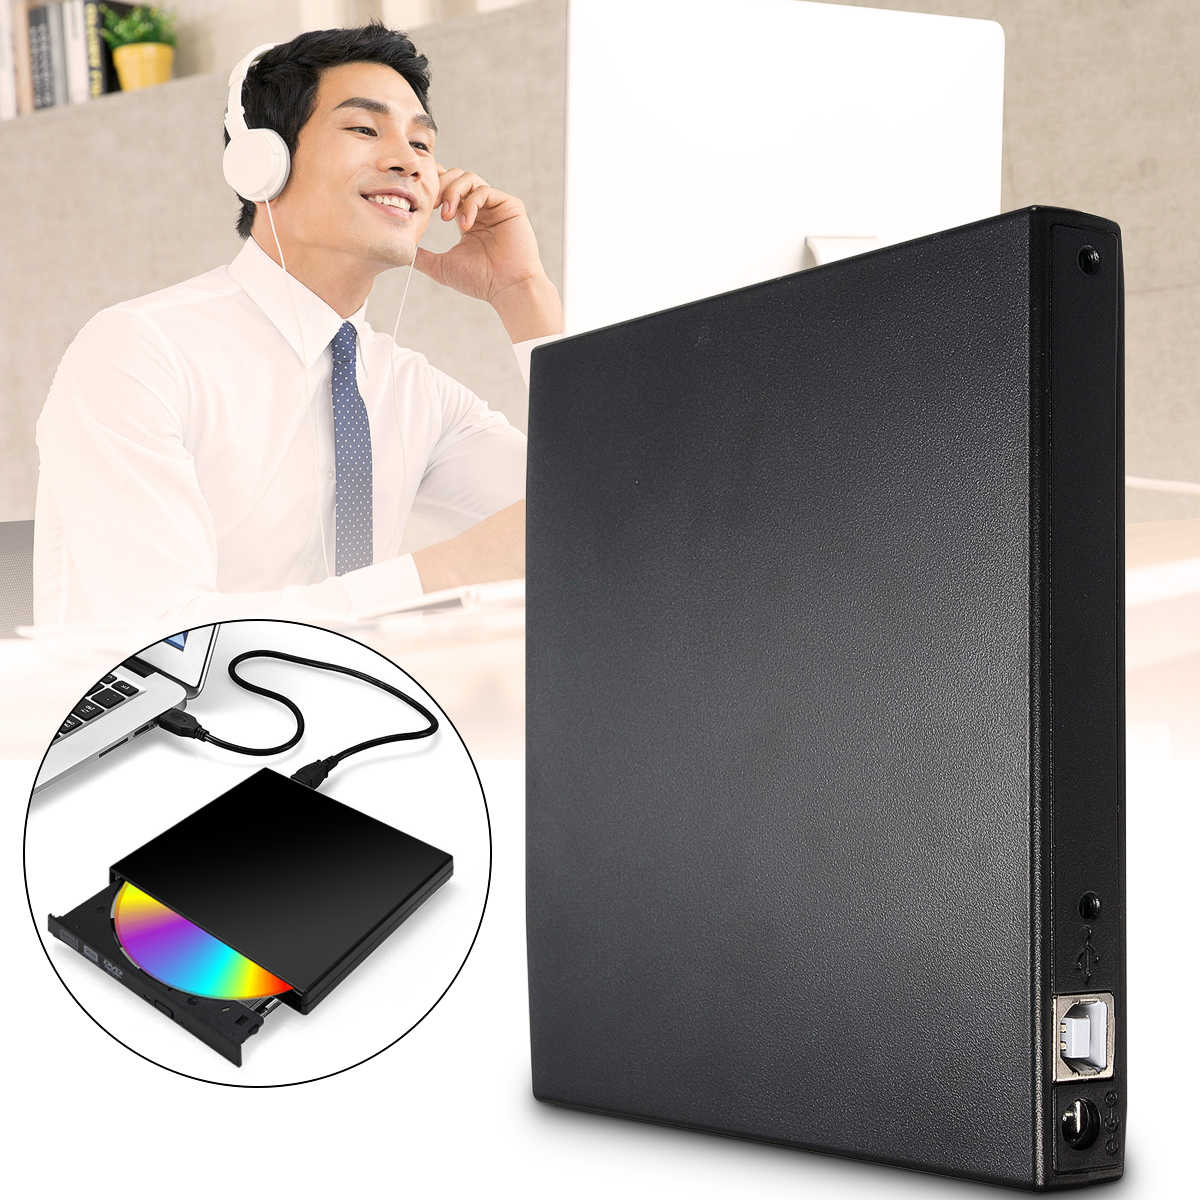 Baru USB 2.0 DVD CD DVD-ROM Ide Cover DVD RW Burner ROM Drive Eksternal Case Enclosure Caddy laptop Notebook Ide Antarmuka